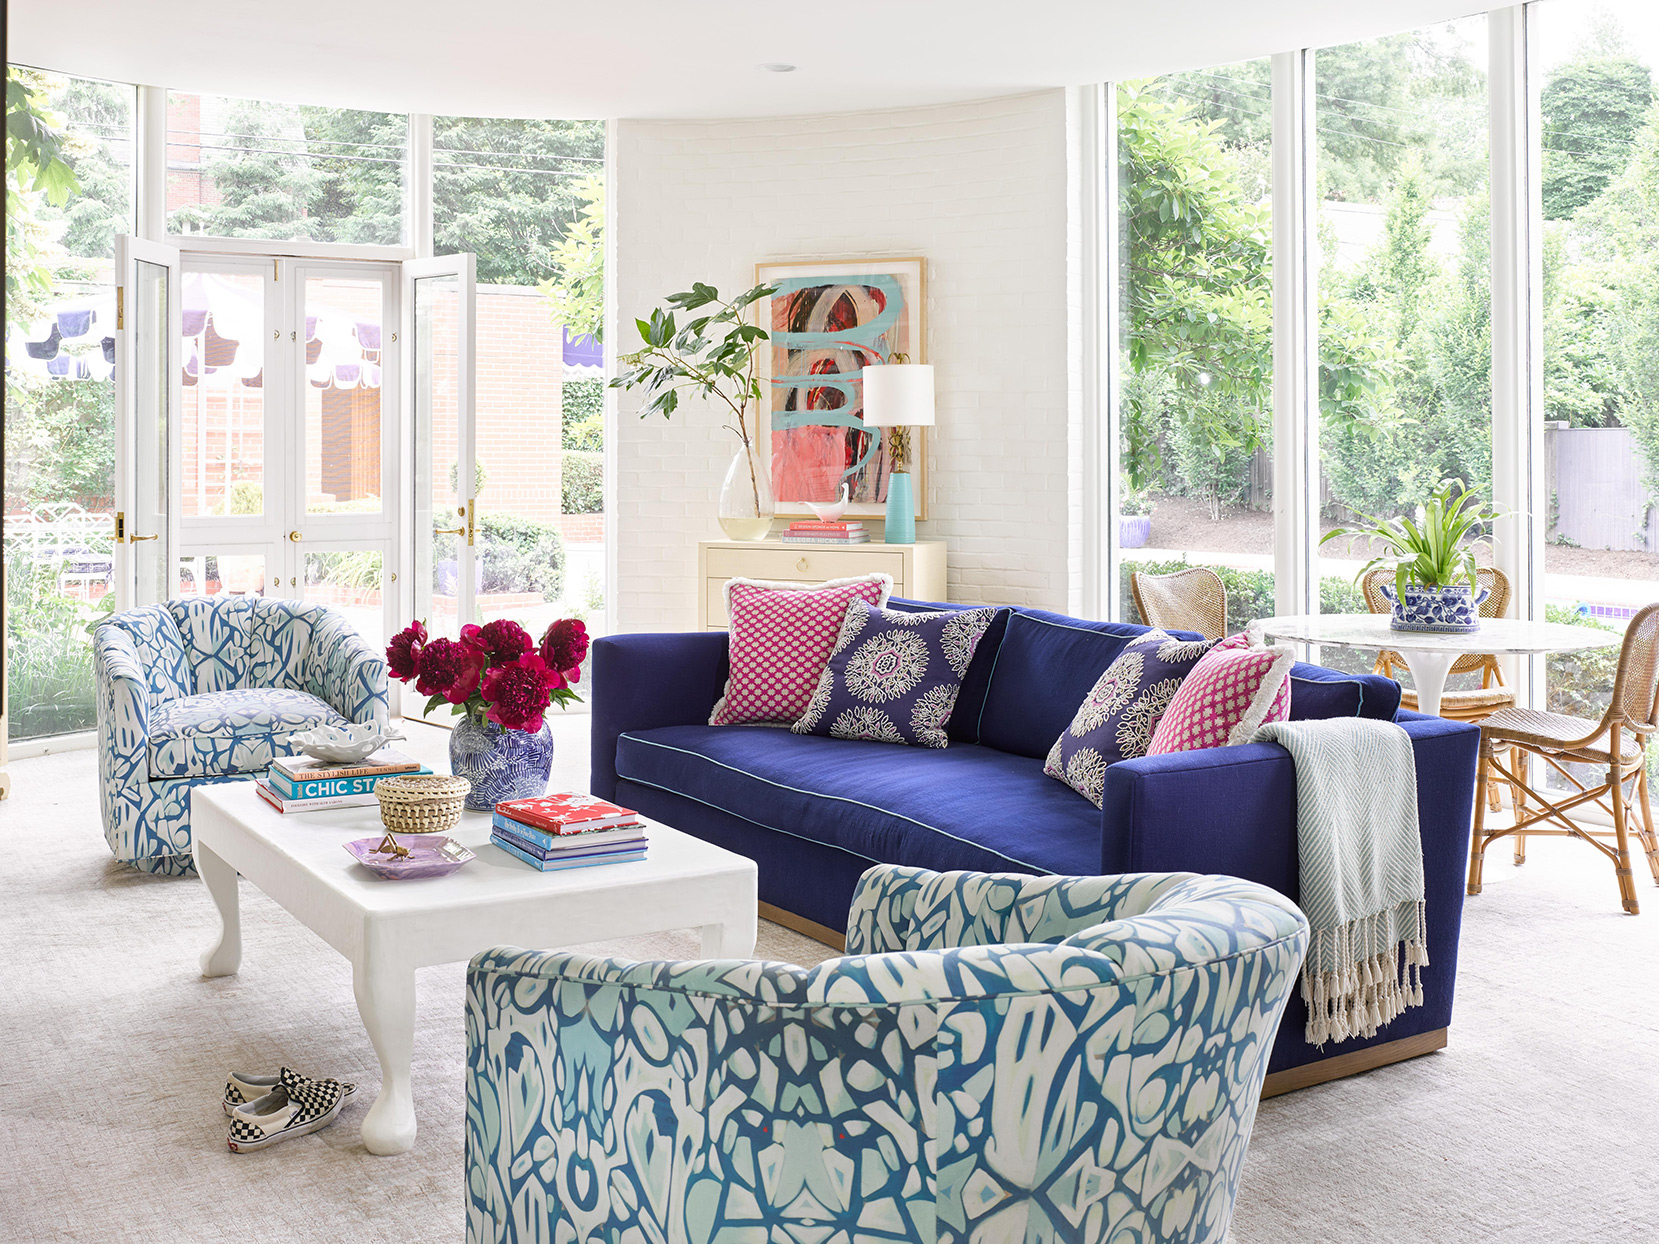 Living room with graphic chairs and blue sofa